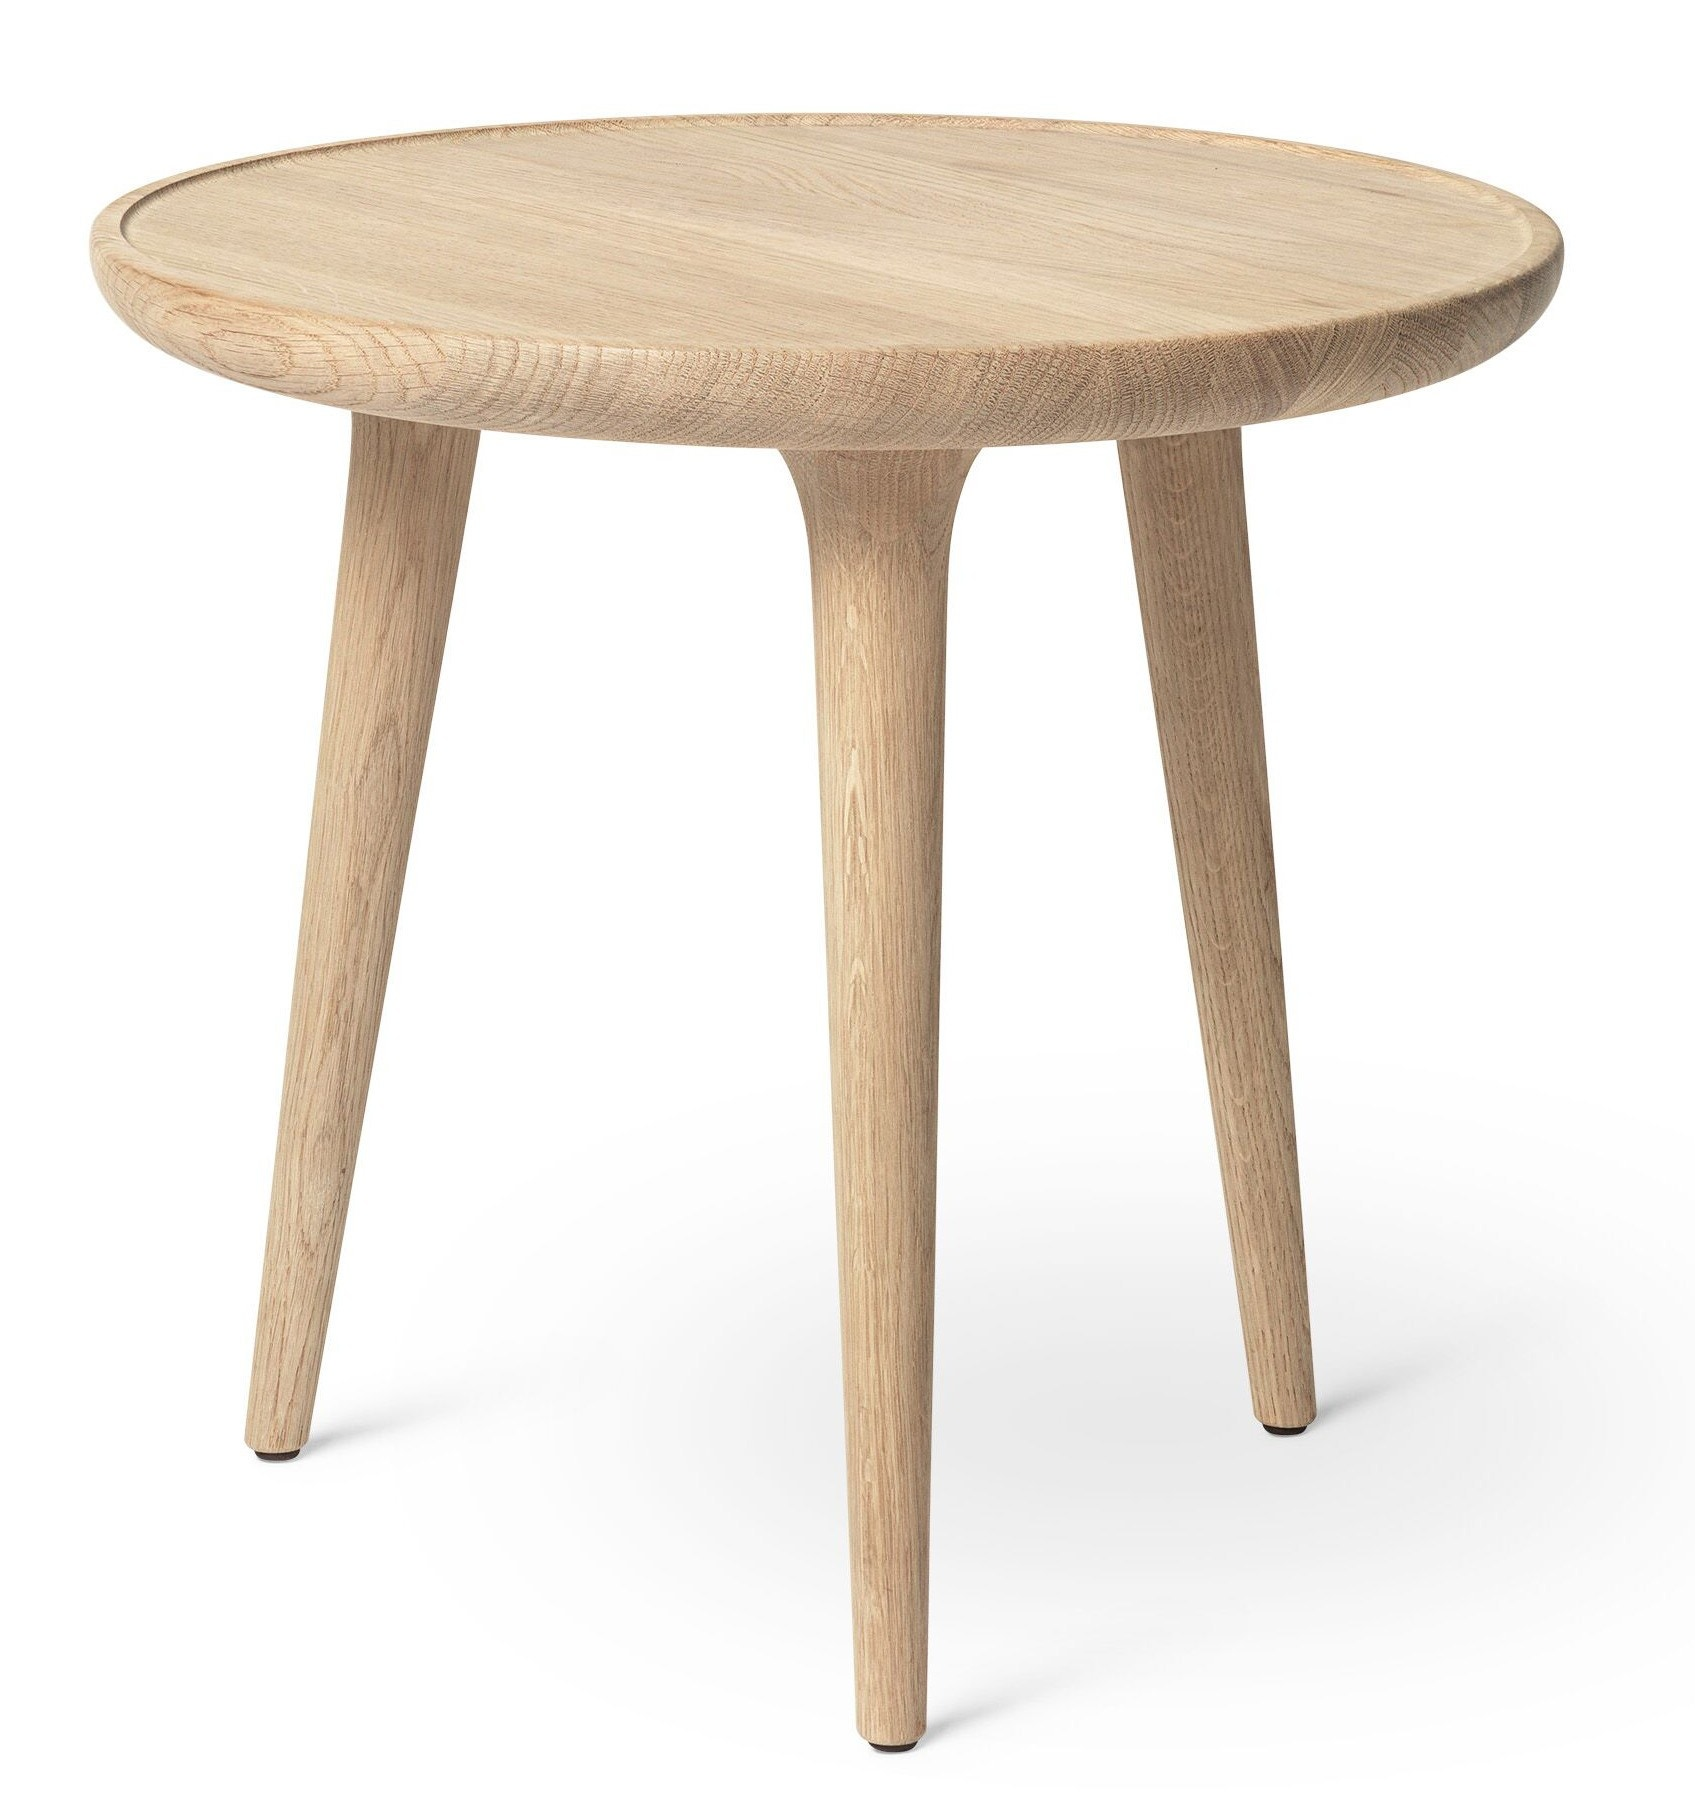 Mater Accent Side Table - Mat Lacqured Oak